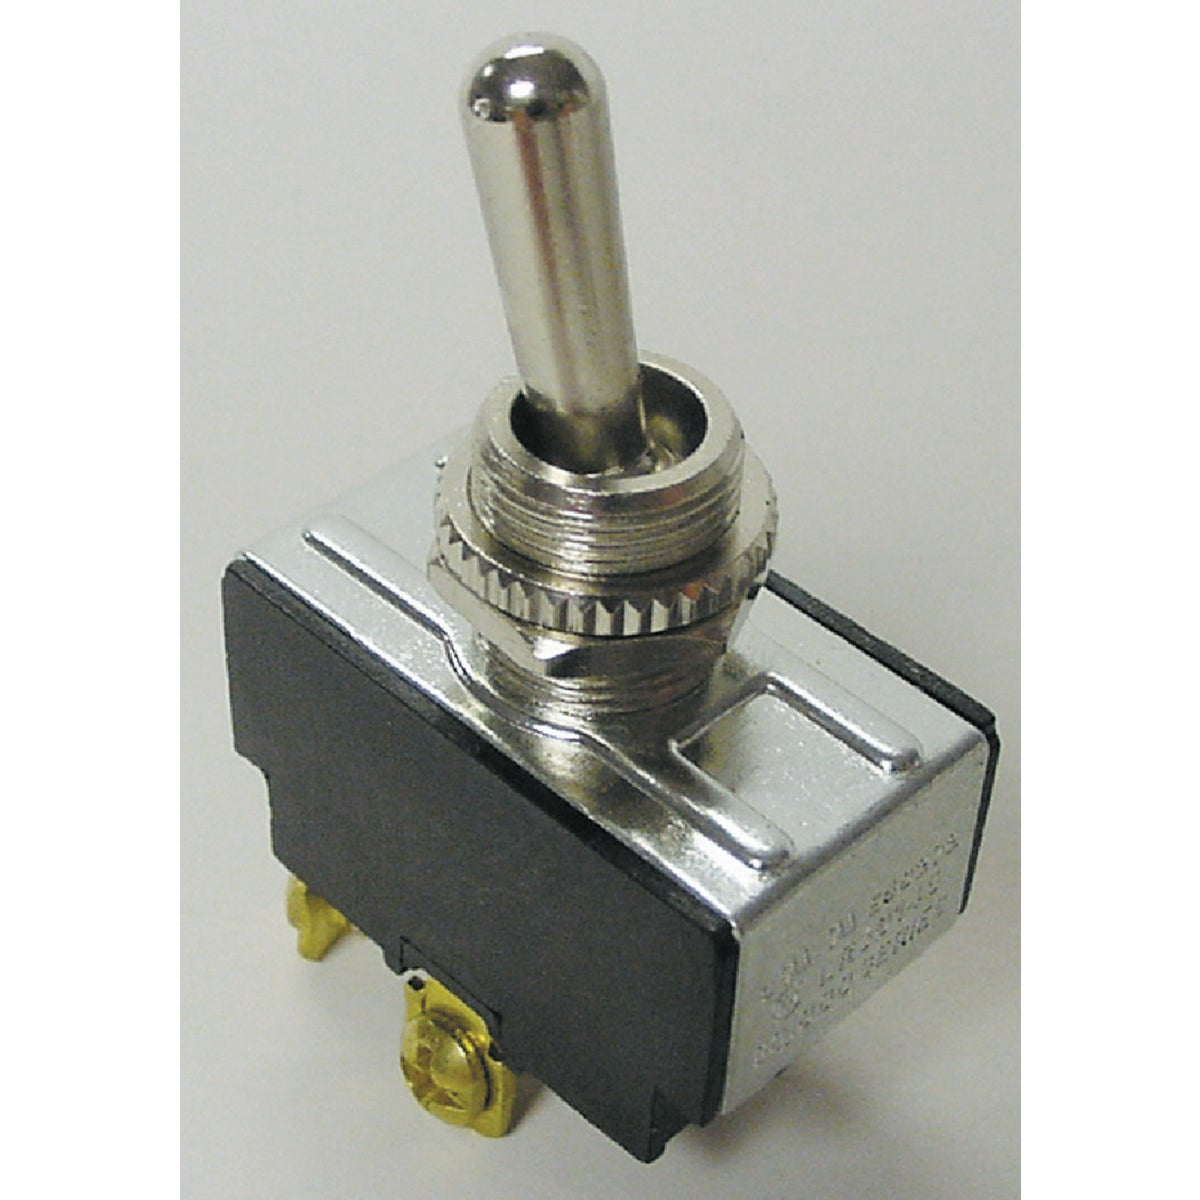 HEAVY DUTY TOGGLE SWITCH - GSW-14 by G B Electrical Inc